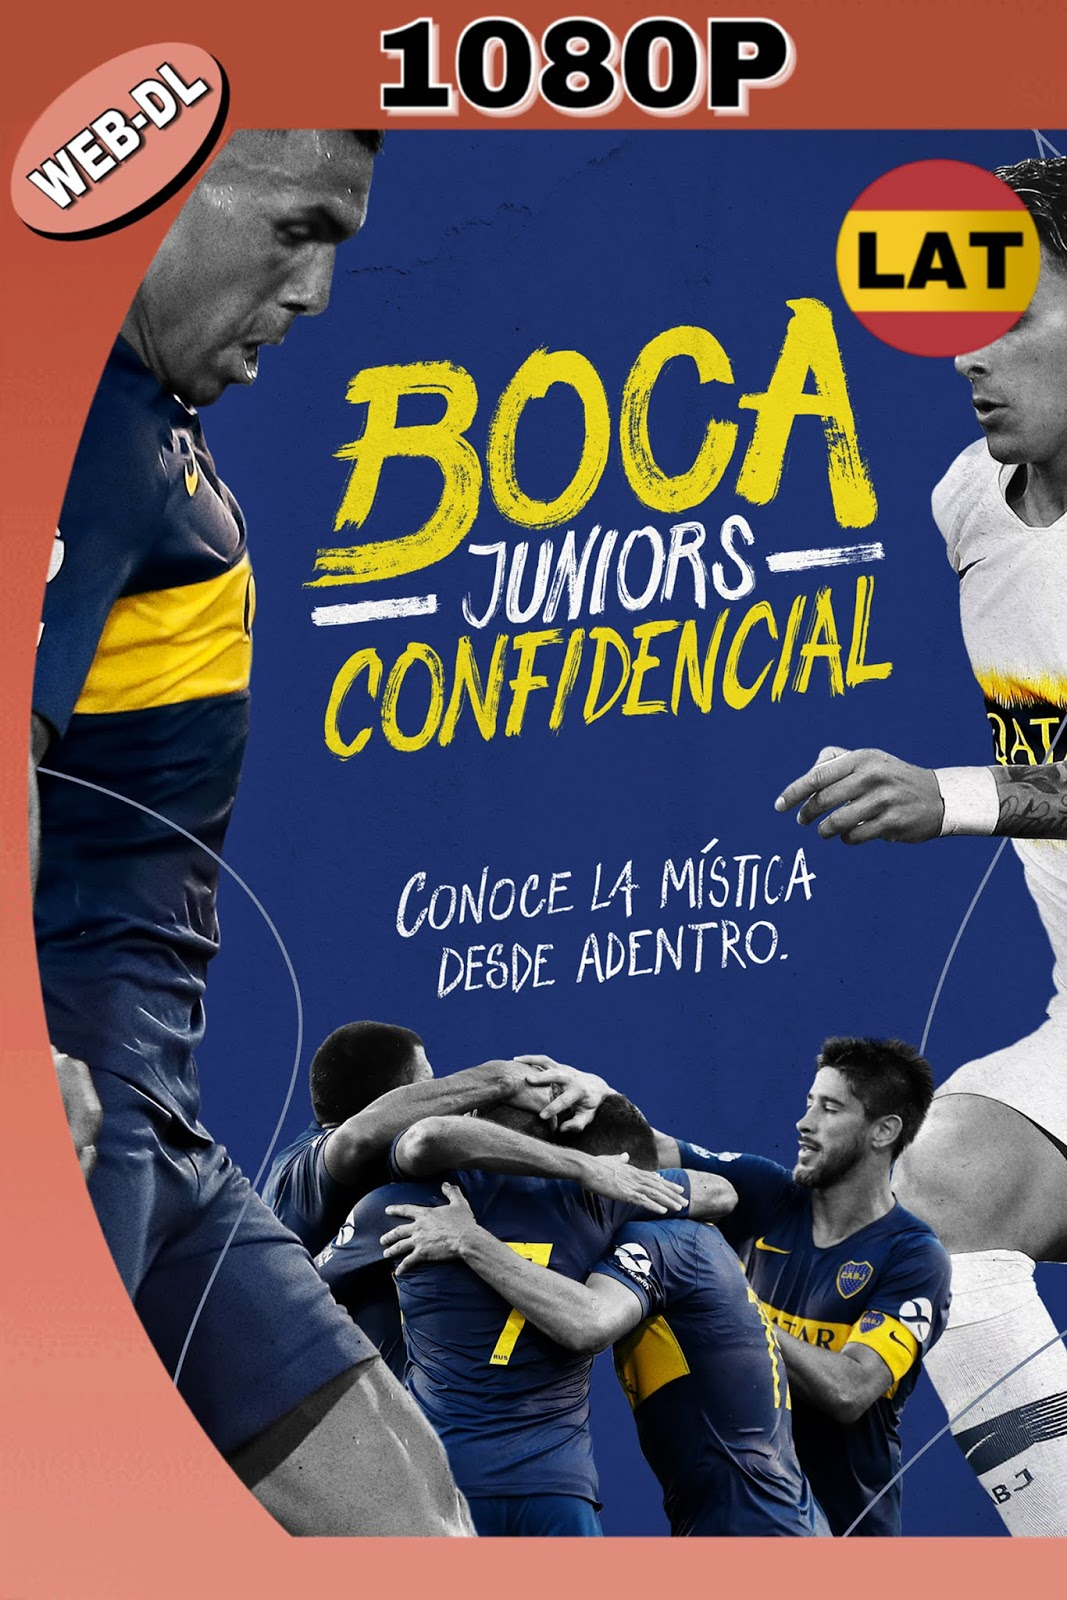 BOCA JUNIORS CONFIDENCIAL 2018 DOCUMENTAL NF WEBDL 1080P 8GB.mkv